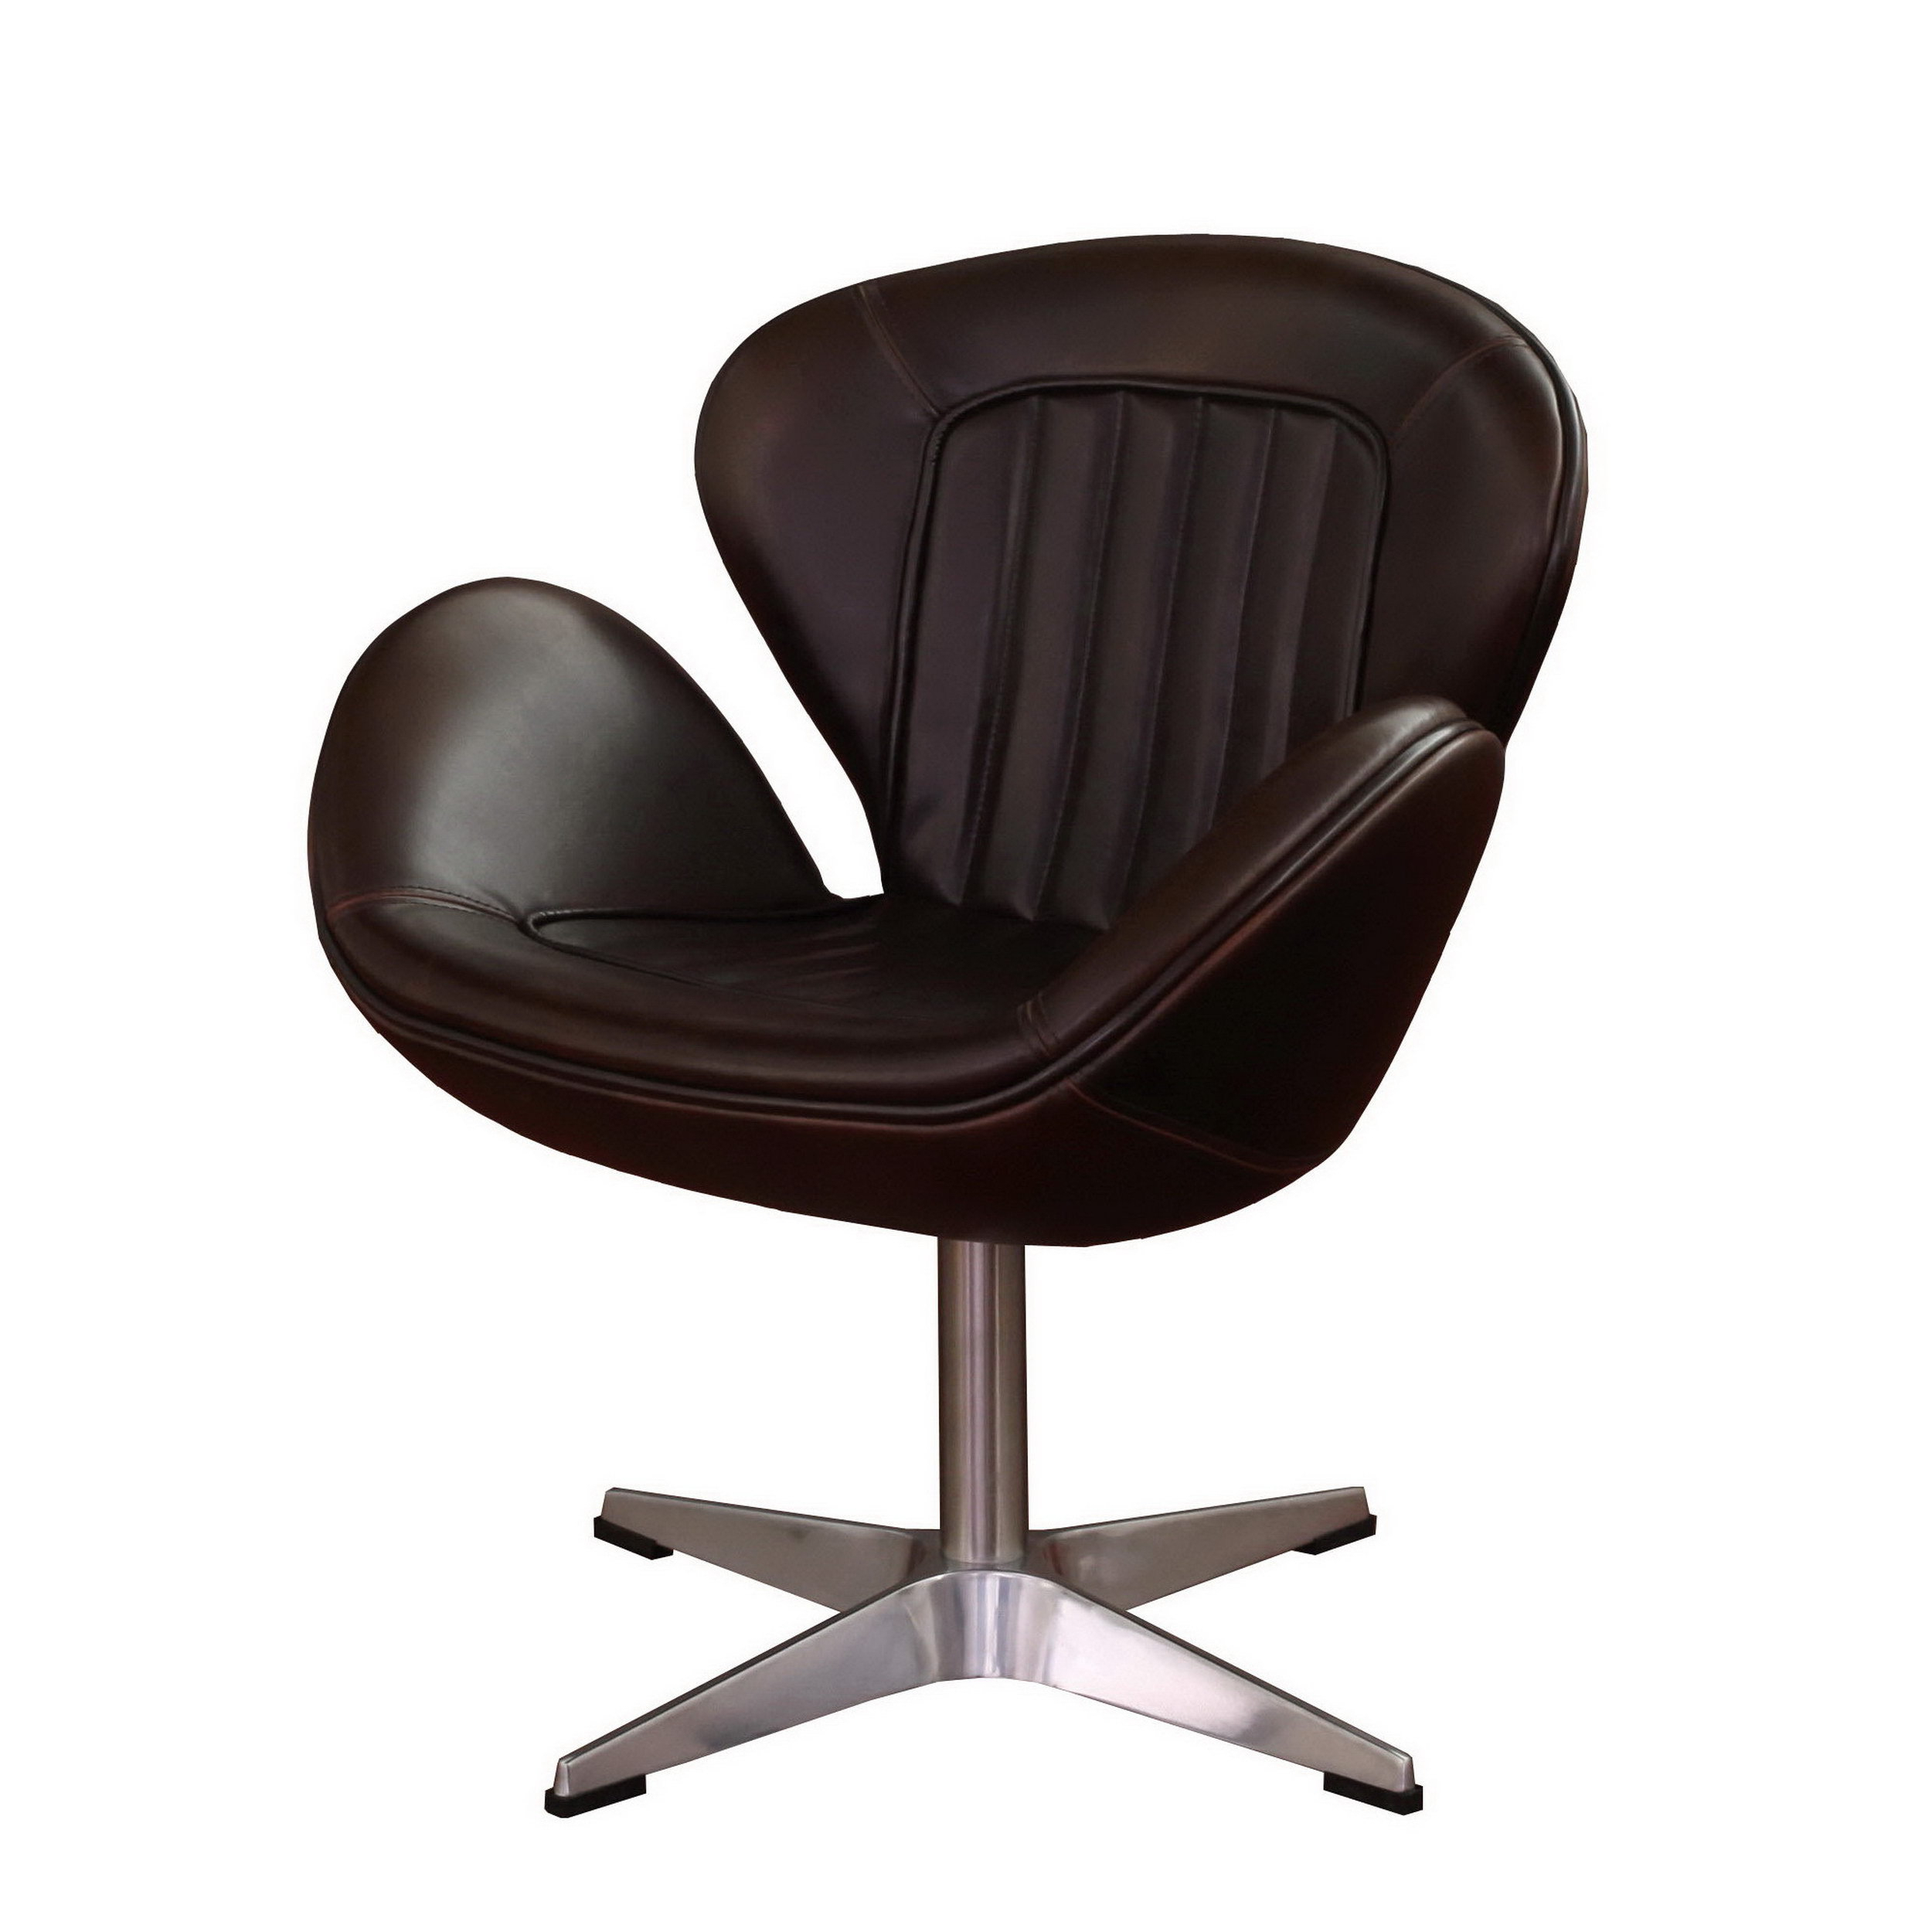 Shop Amelia Vintage Tobacco Leather Swivel Chair – Free Shipping Regarding Most Popular Swivel Tobacco Leather Chairs (View 6 of 20)